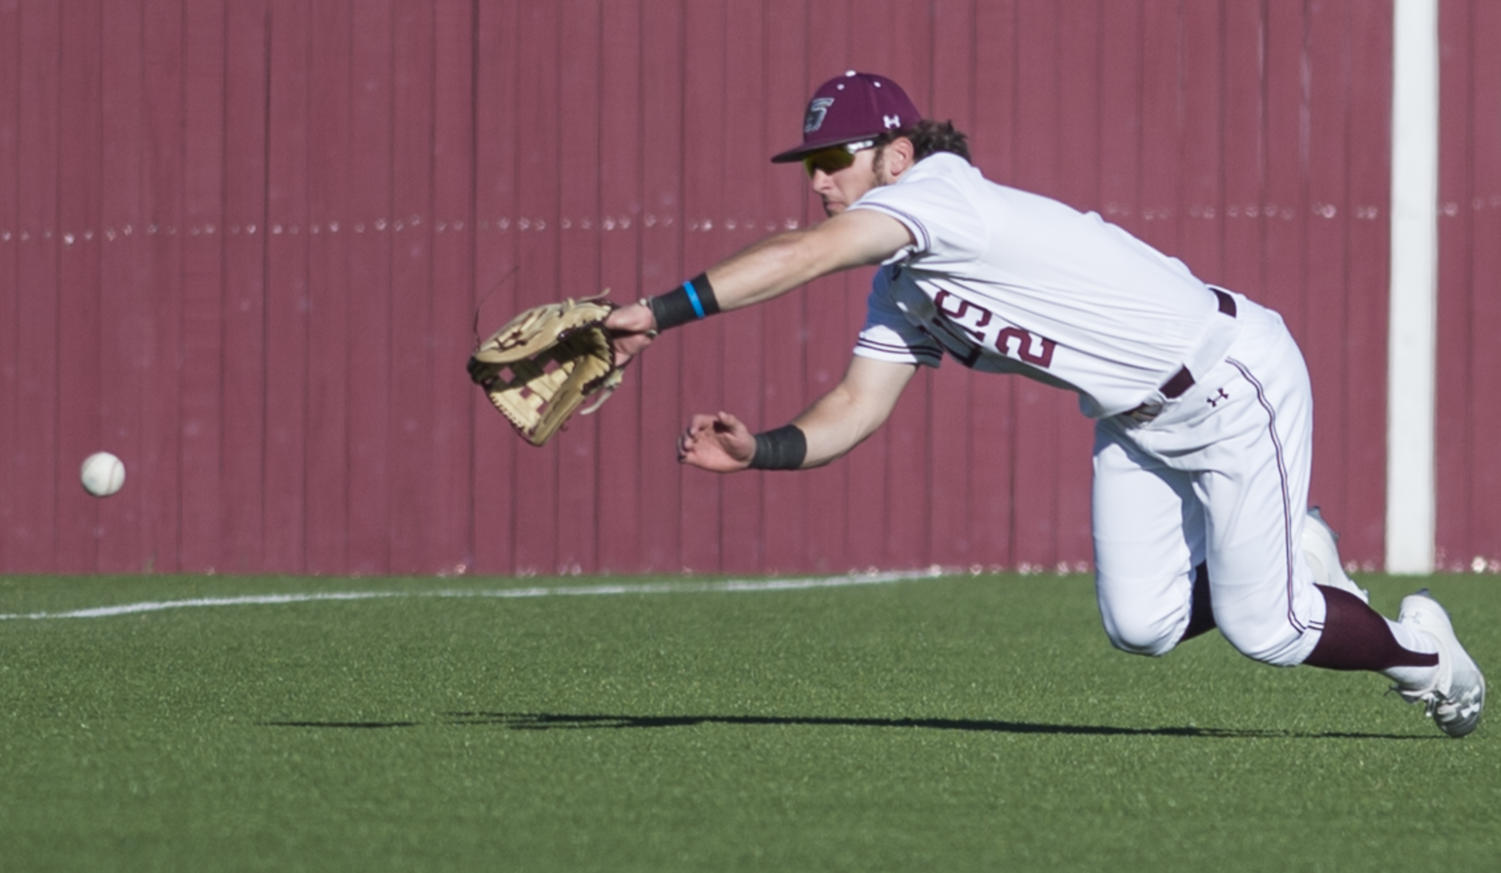 Junior left fielder Alex Lyon dives for the ball Saturday, March 3, 2018, during the Warkhawks 13-7 win against the Salukis at Itchy Jones Stadium. (Dylan Nelson | @Dylan_Nelson99)